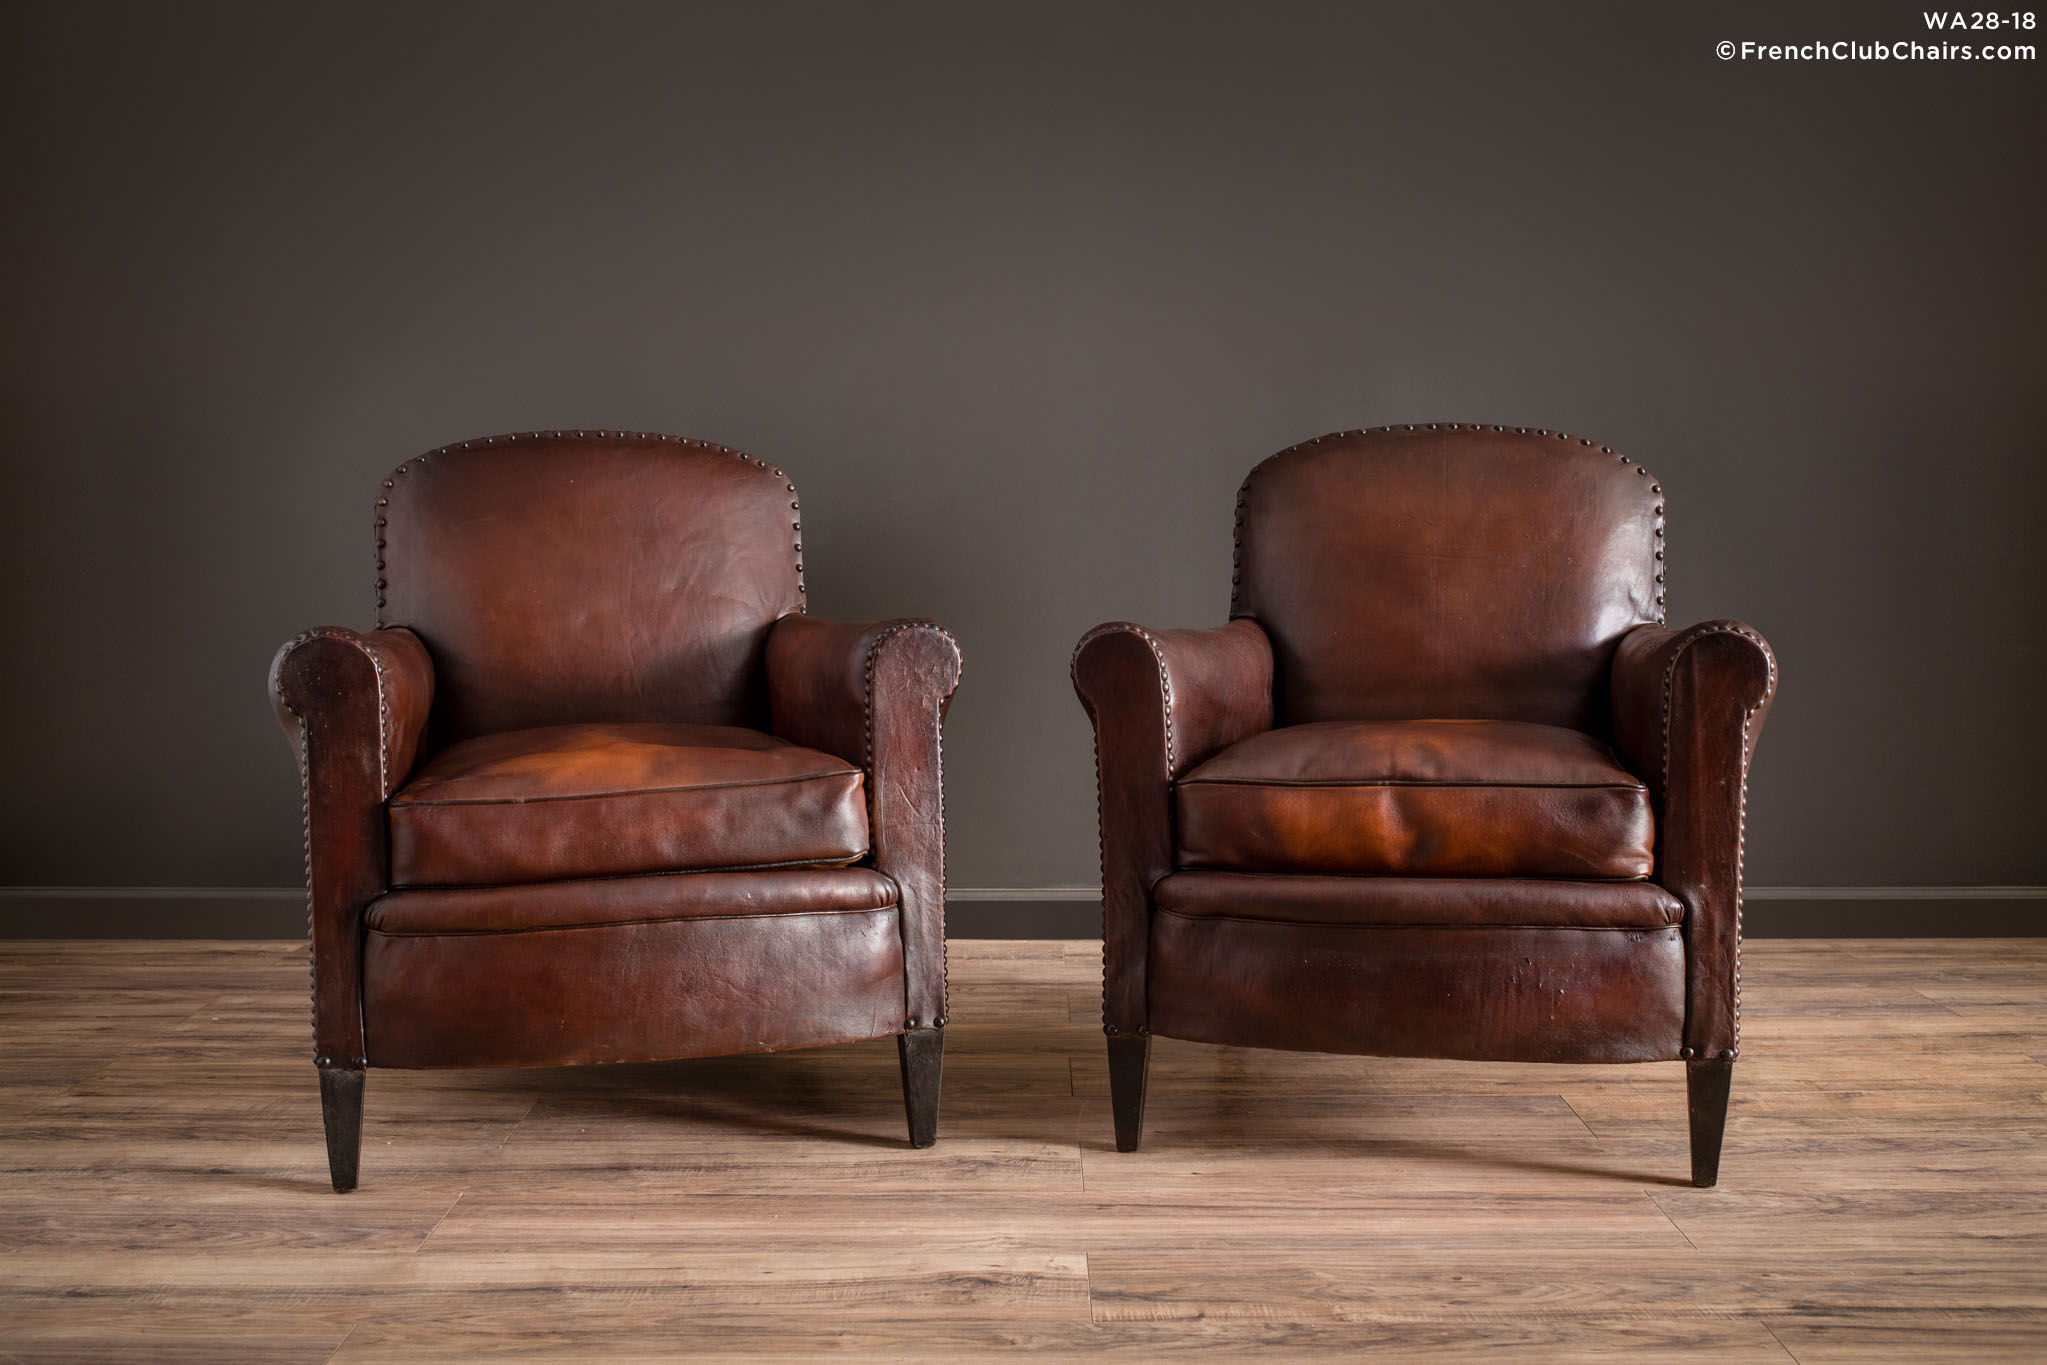 WA_28-18_Rambouillet_Dark_Library_Pair_R_1TQ1-williams-antiks-leather-french-club-chair-wa_fcccom